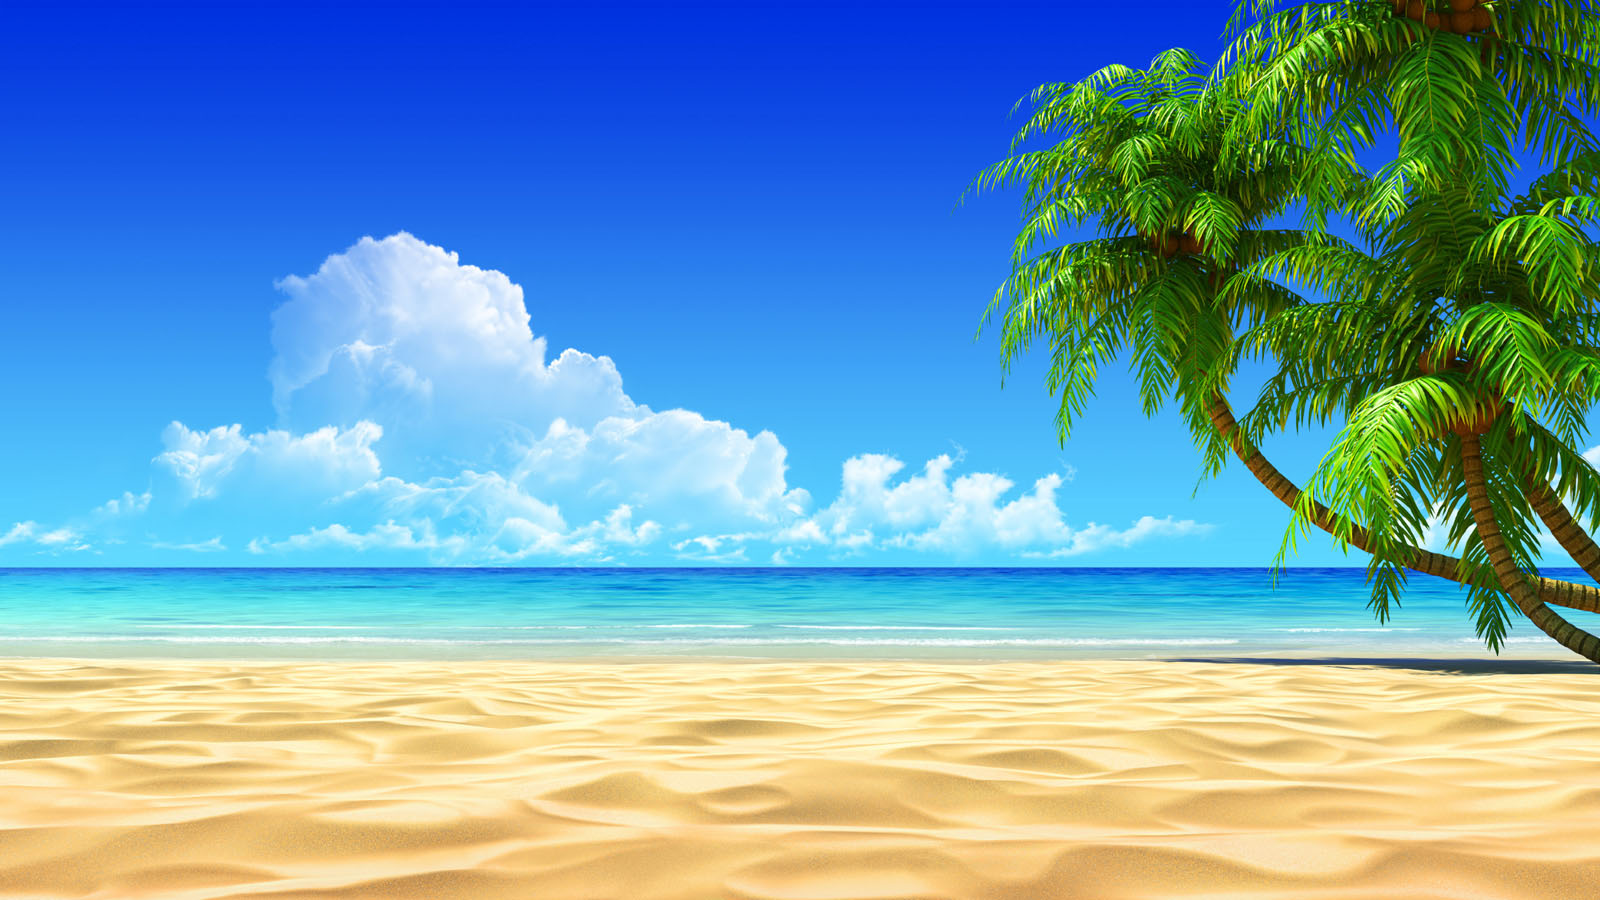 45 Beach Wallpaper For Mobile And Desktop In Full HD For ...